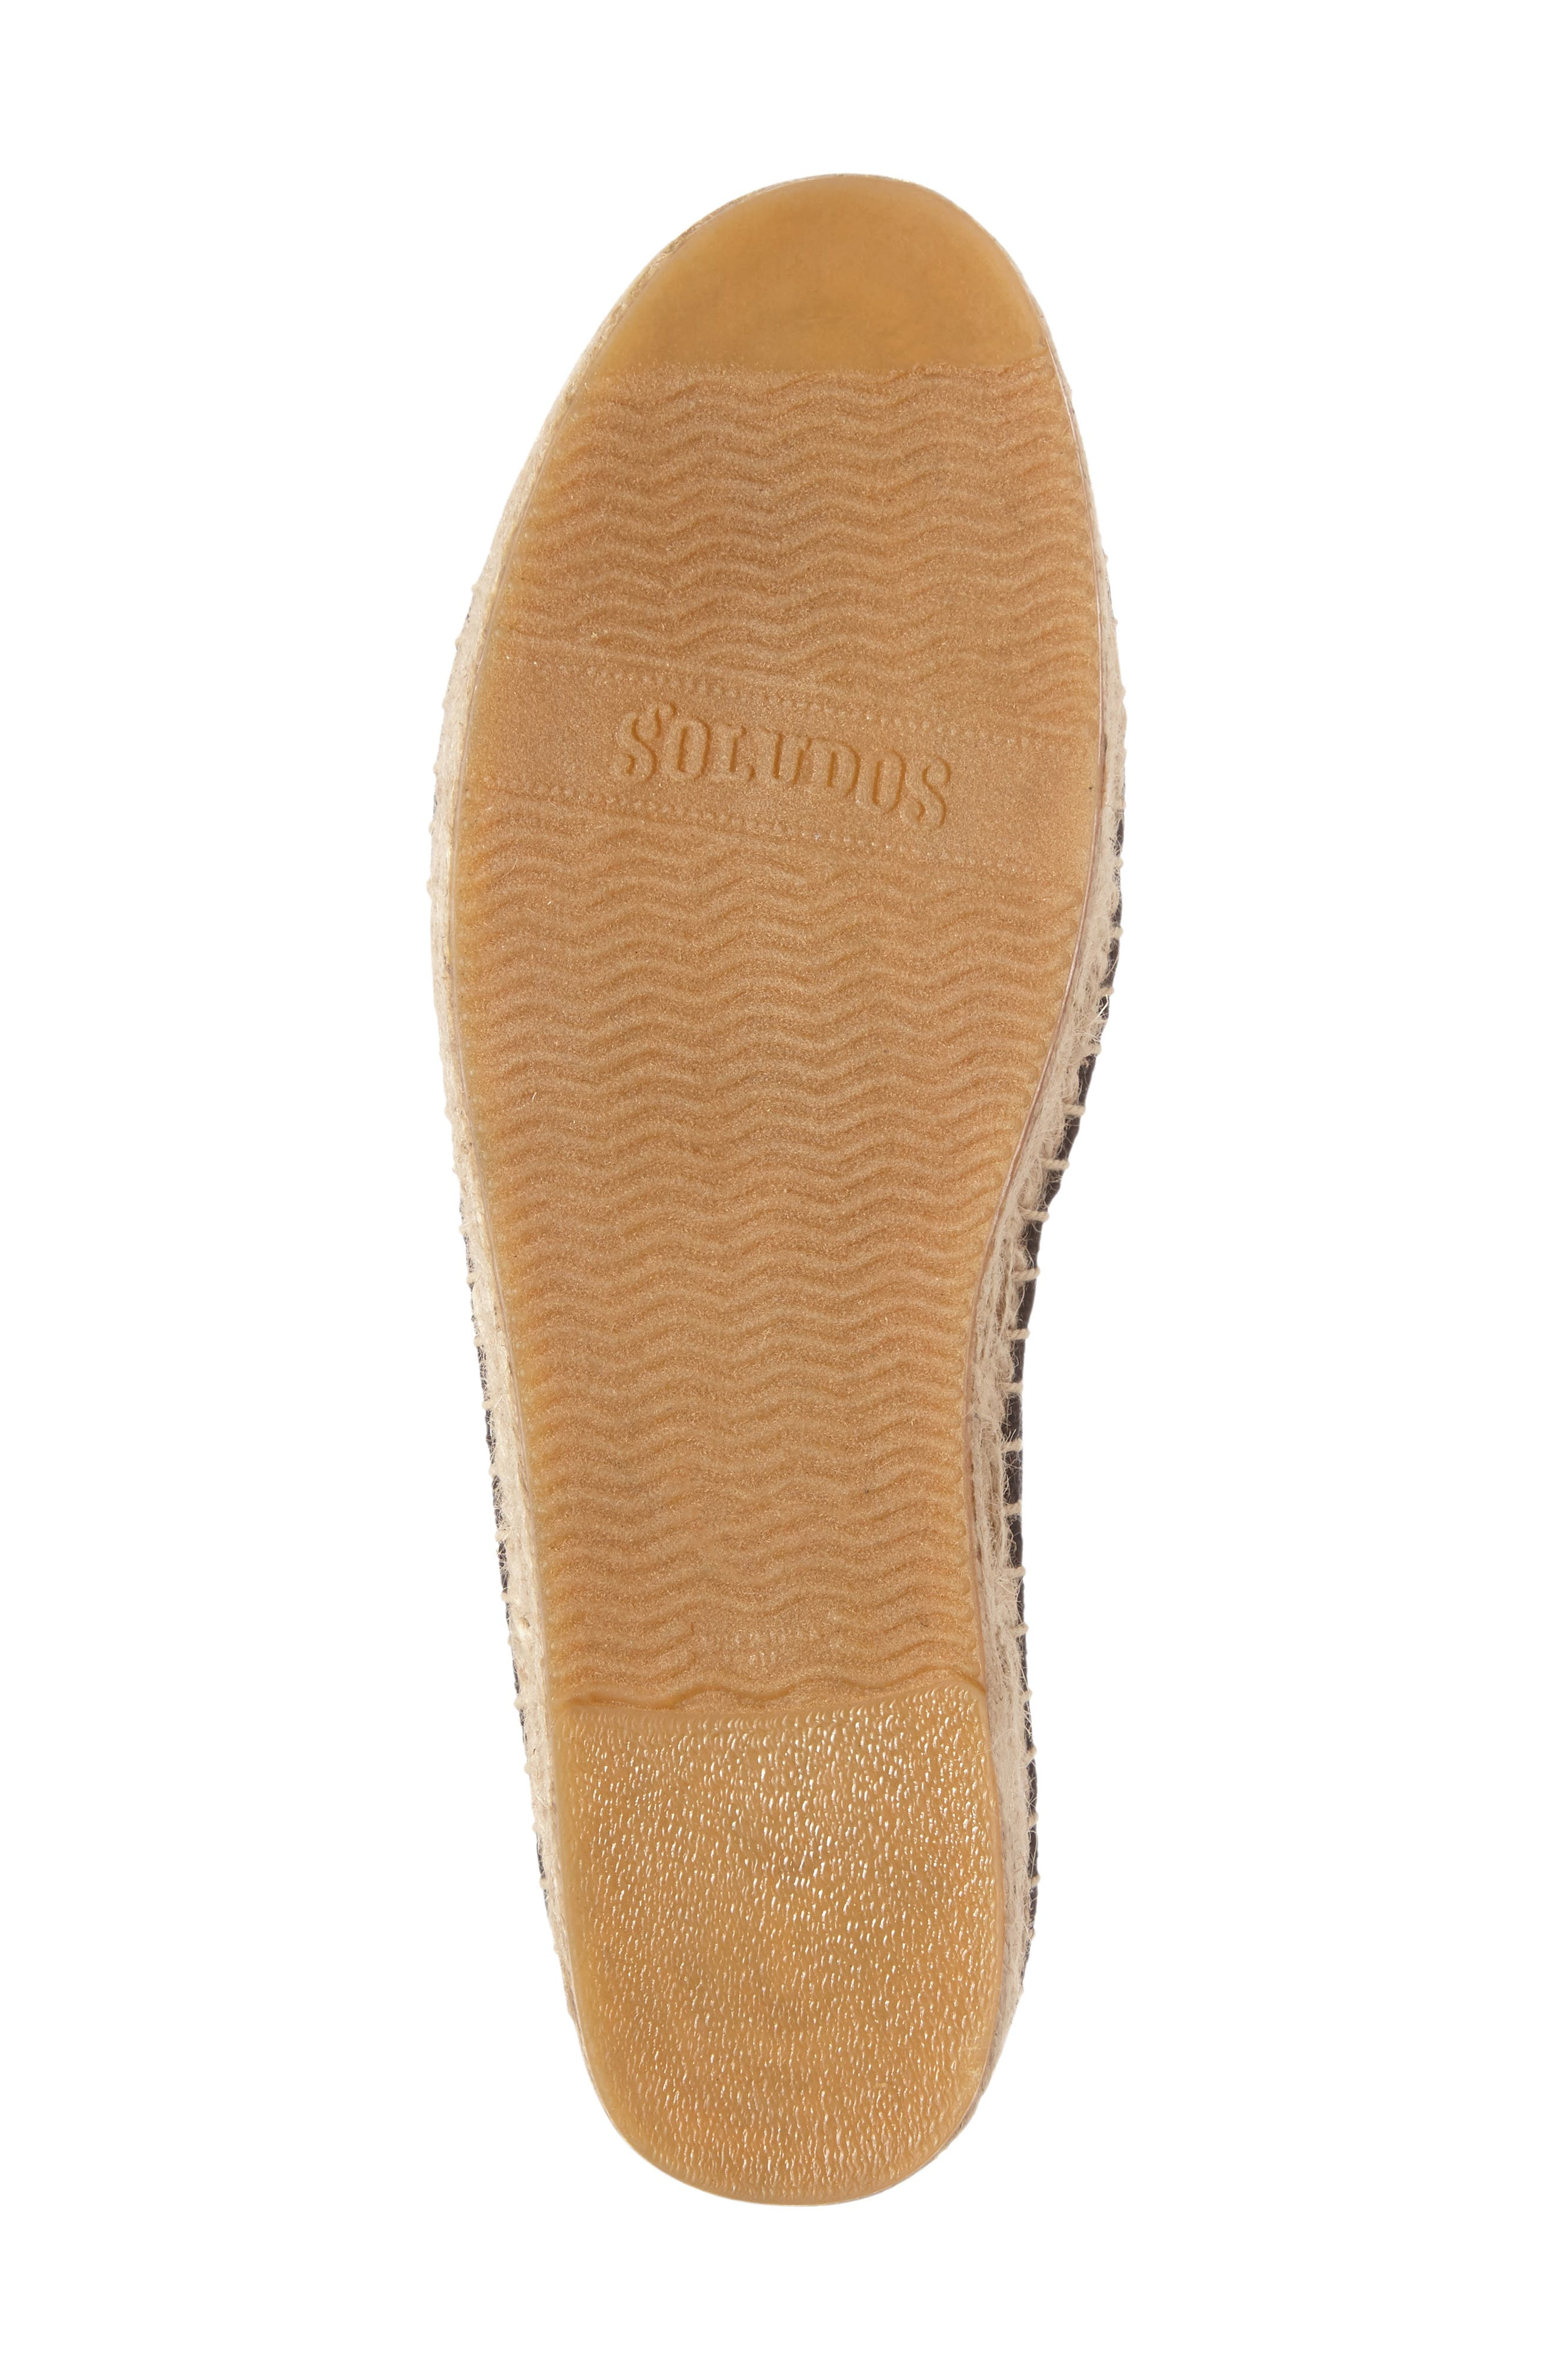 Frenchie Espadrille Loafer,                             Alternate thumbnail 4, color,                             006